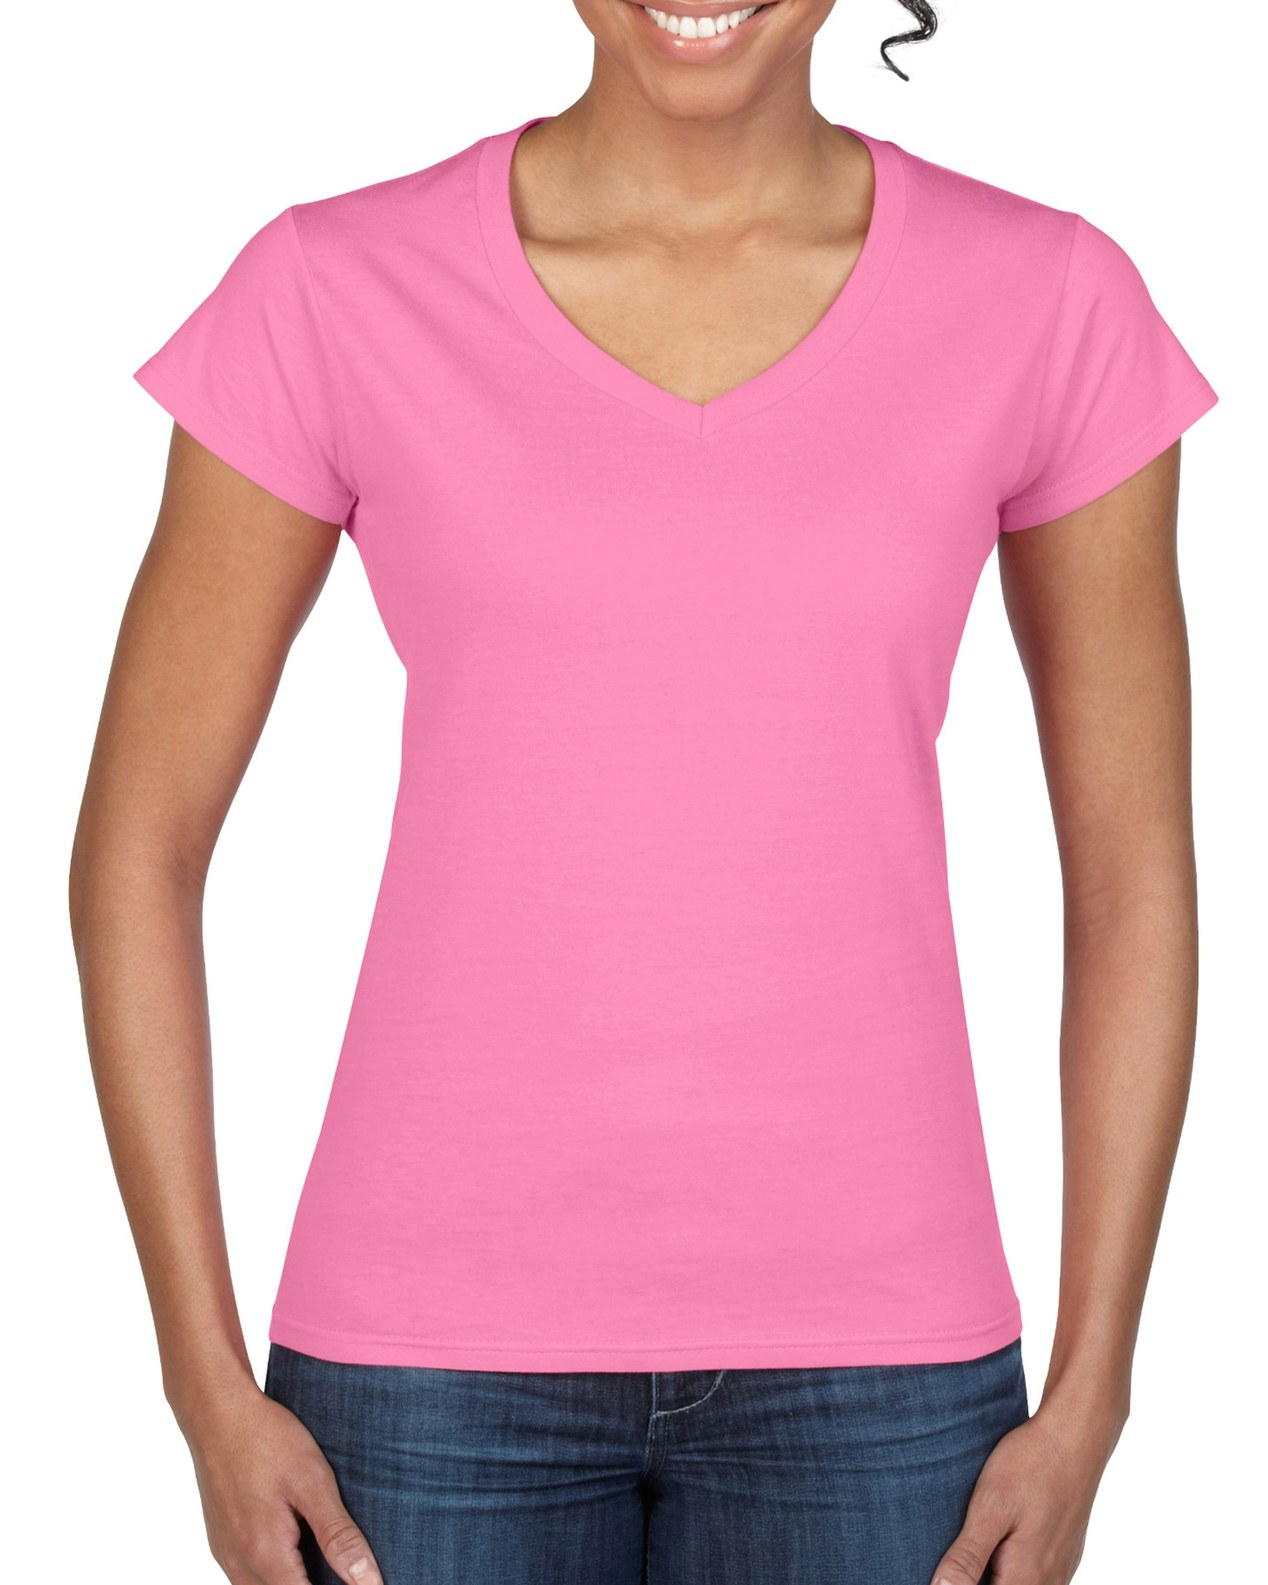 V-NECK T-SHIRT LADIES TOP TEE SOFT RING-SPUN COTTON FIT size M or L WOMEN OFFER